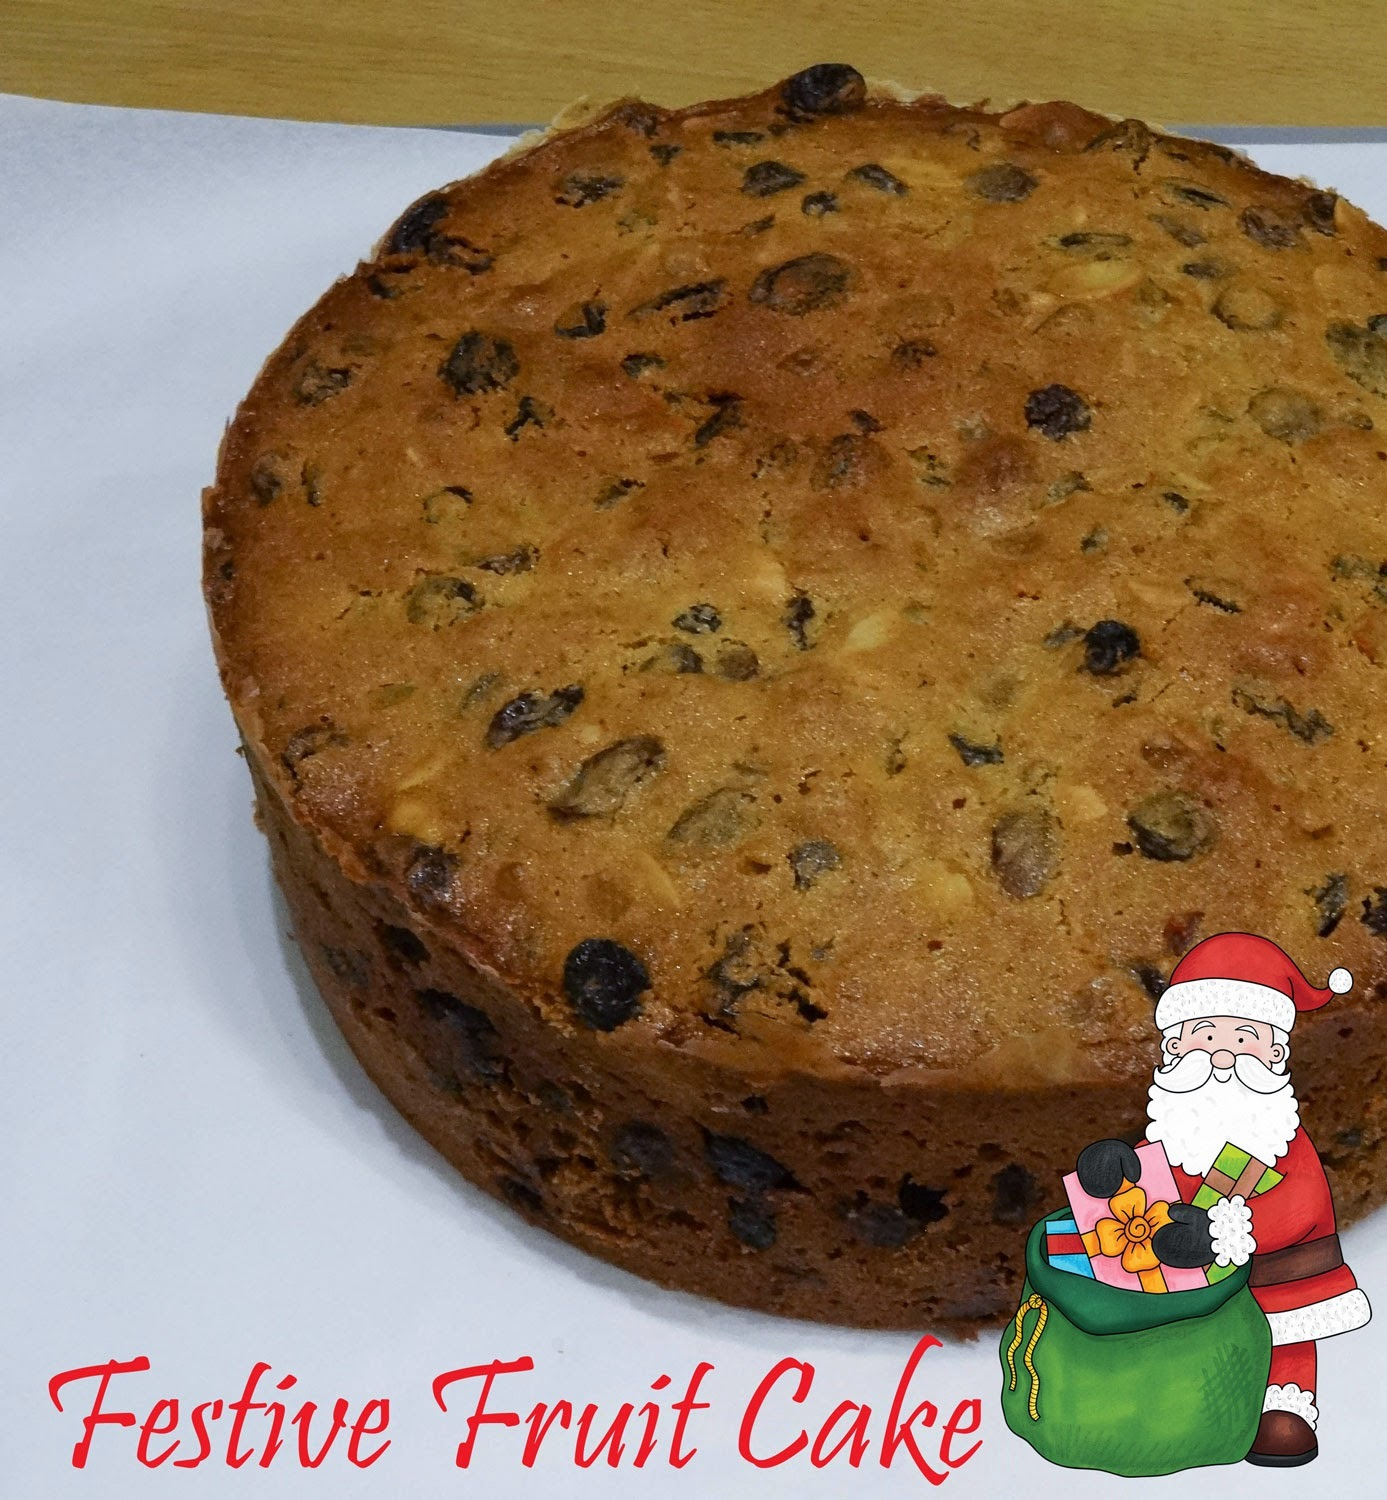 What to Bake and How to Bake it: Festive Fruit Cake